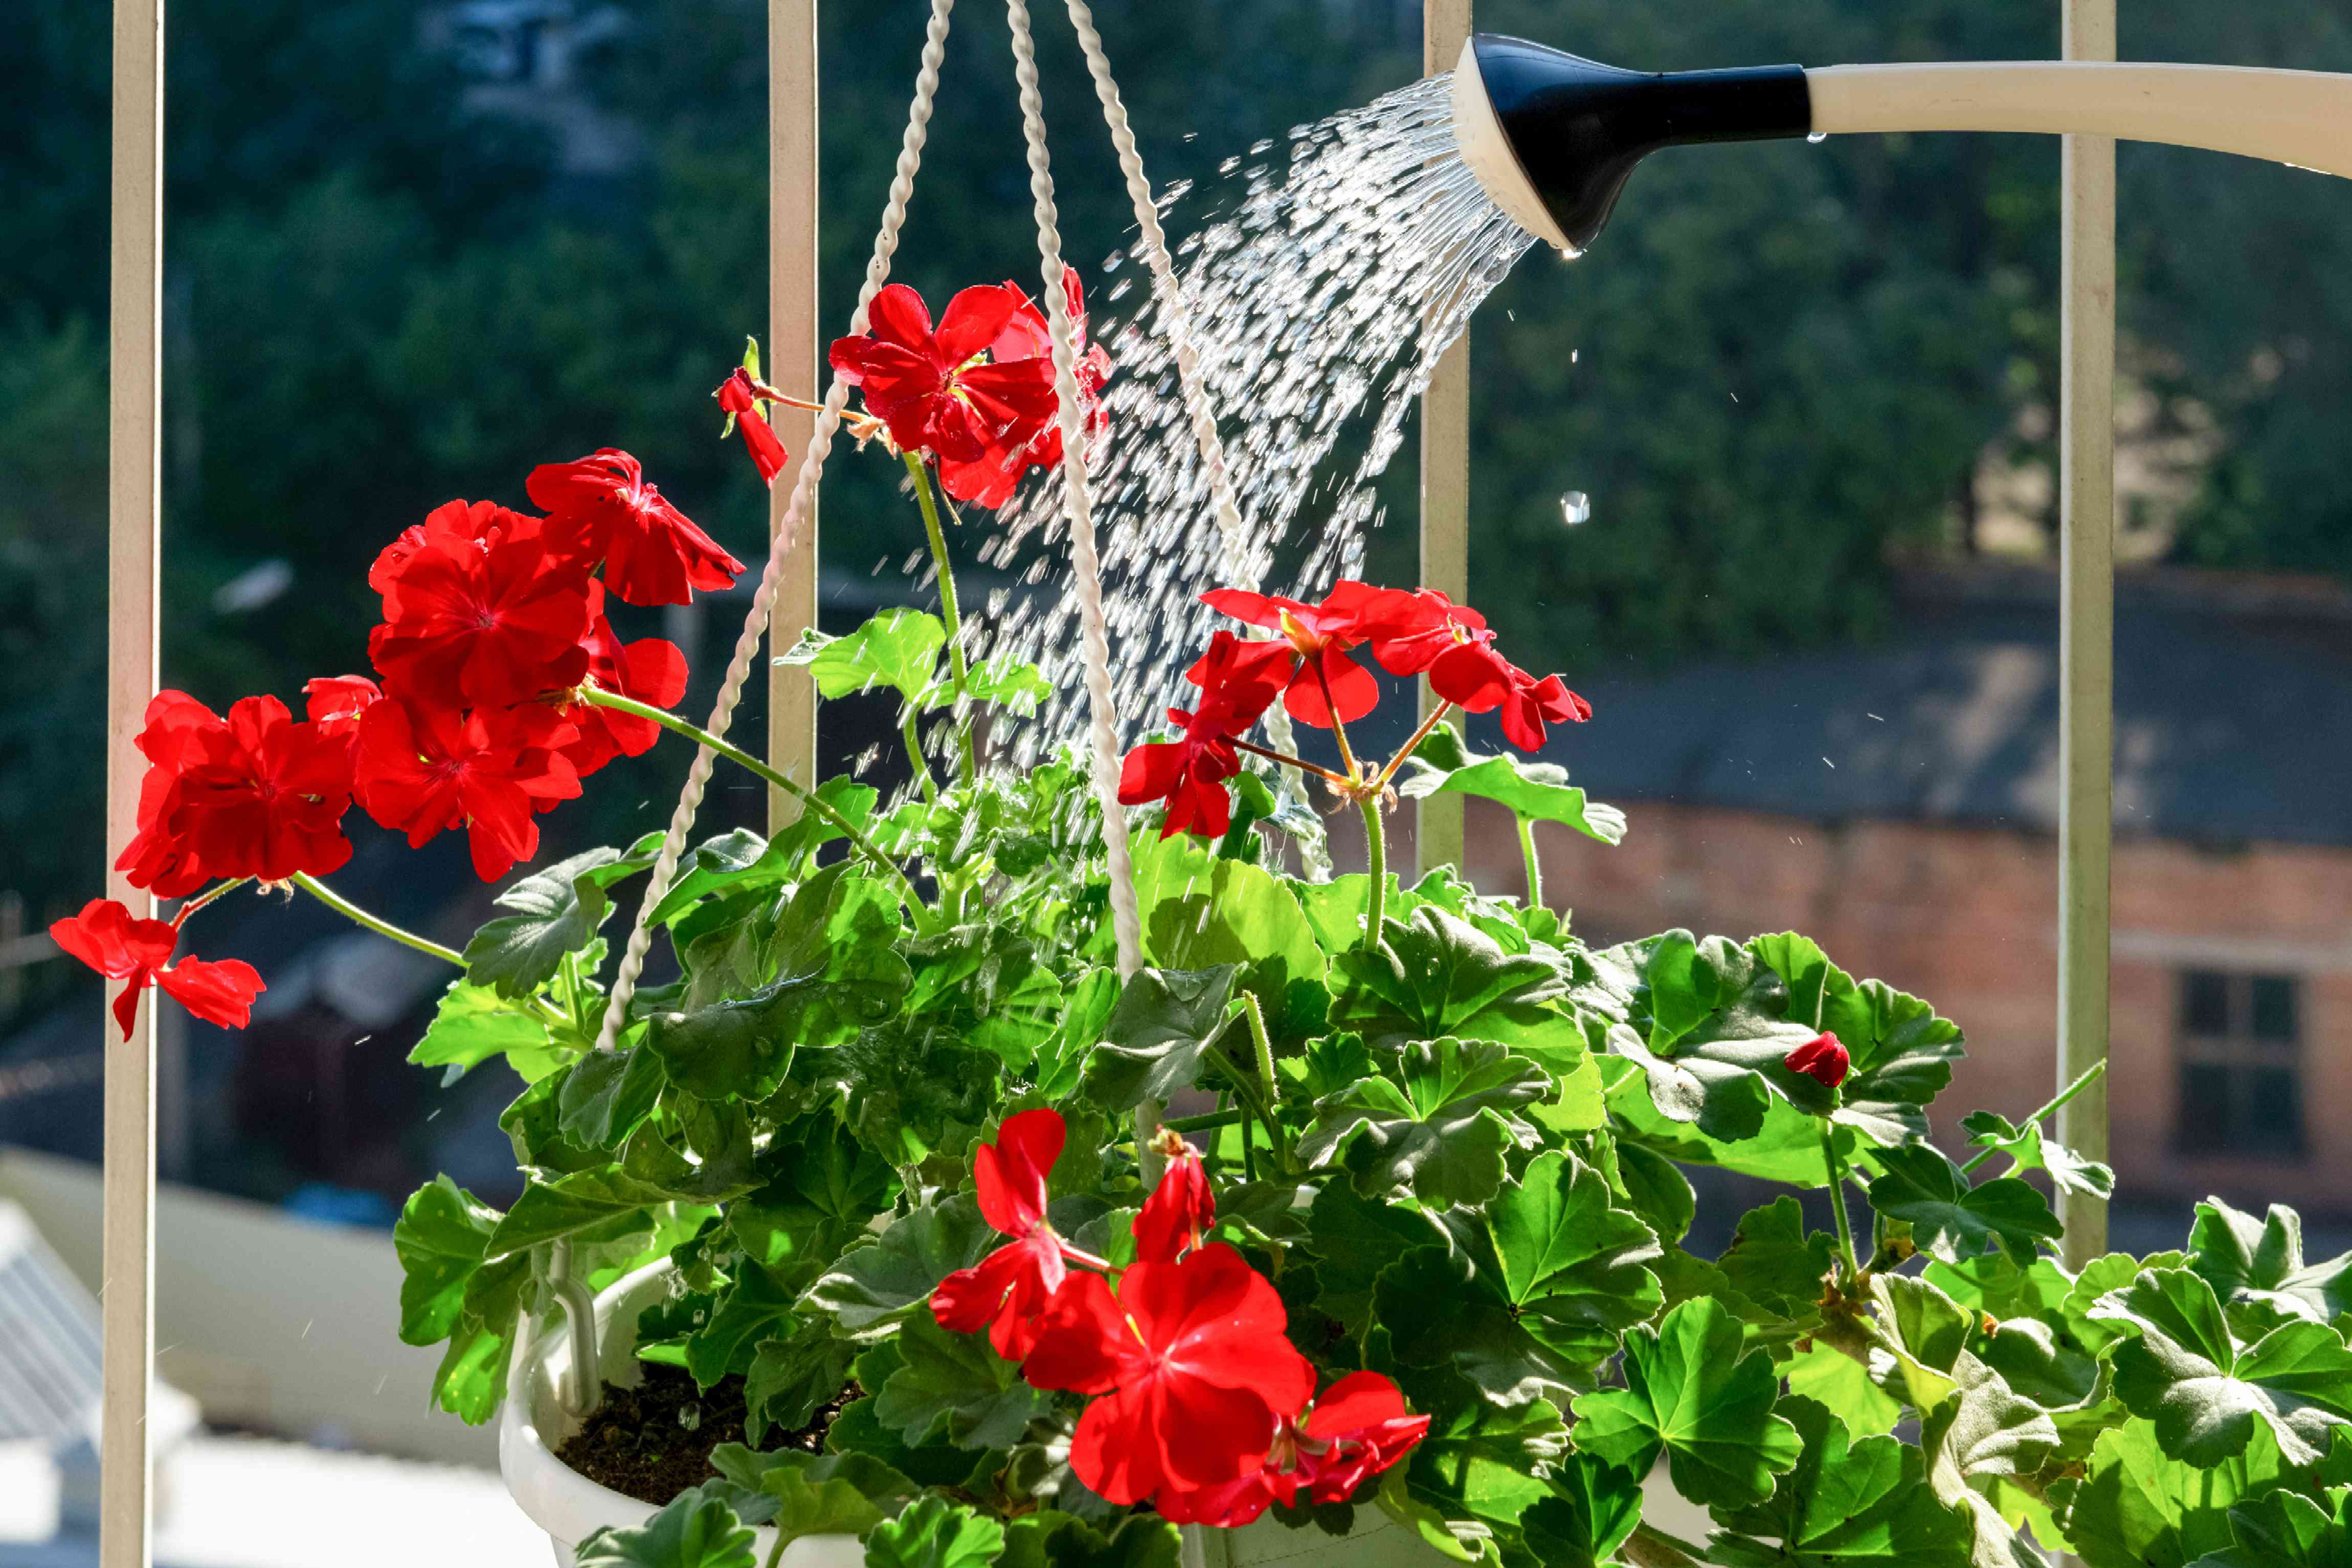 Hanging planter with red flowers being watered from watering can